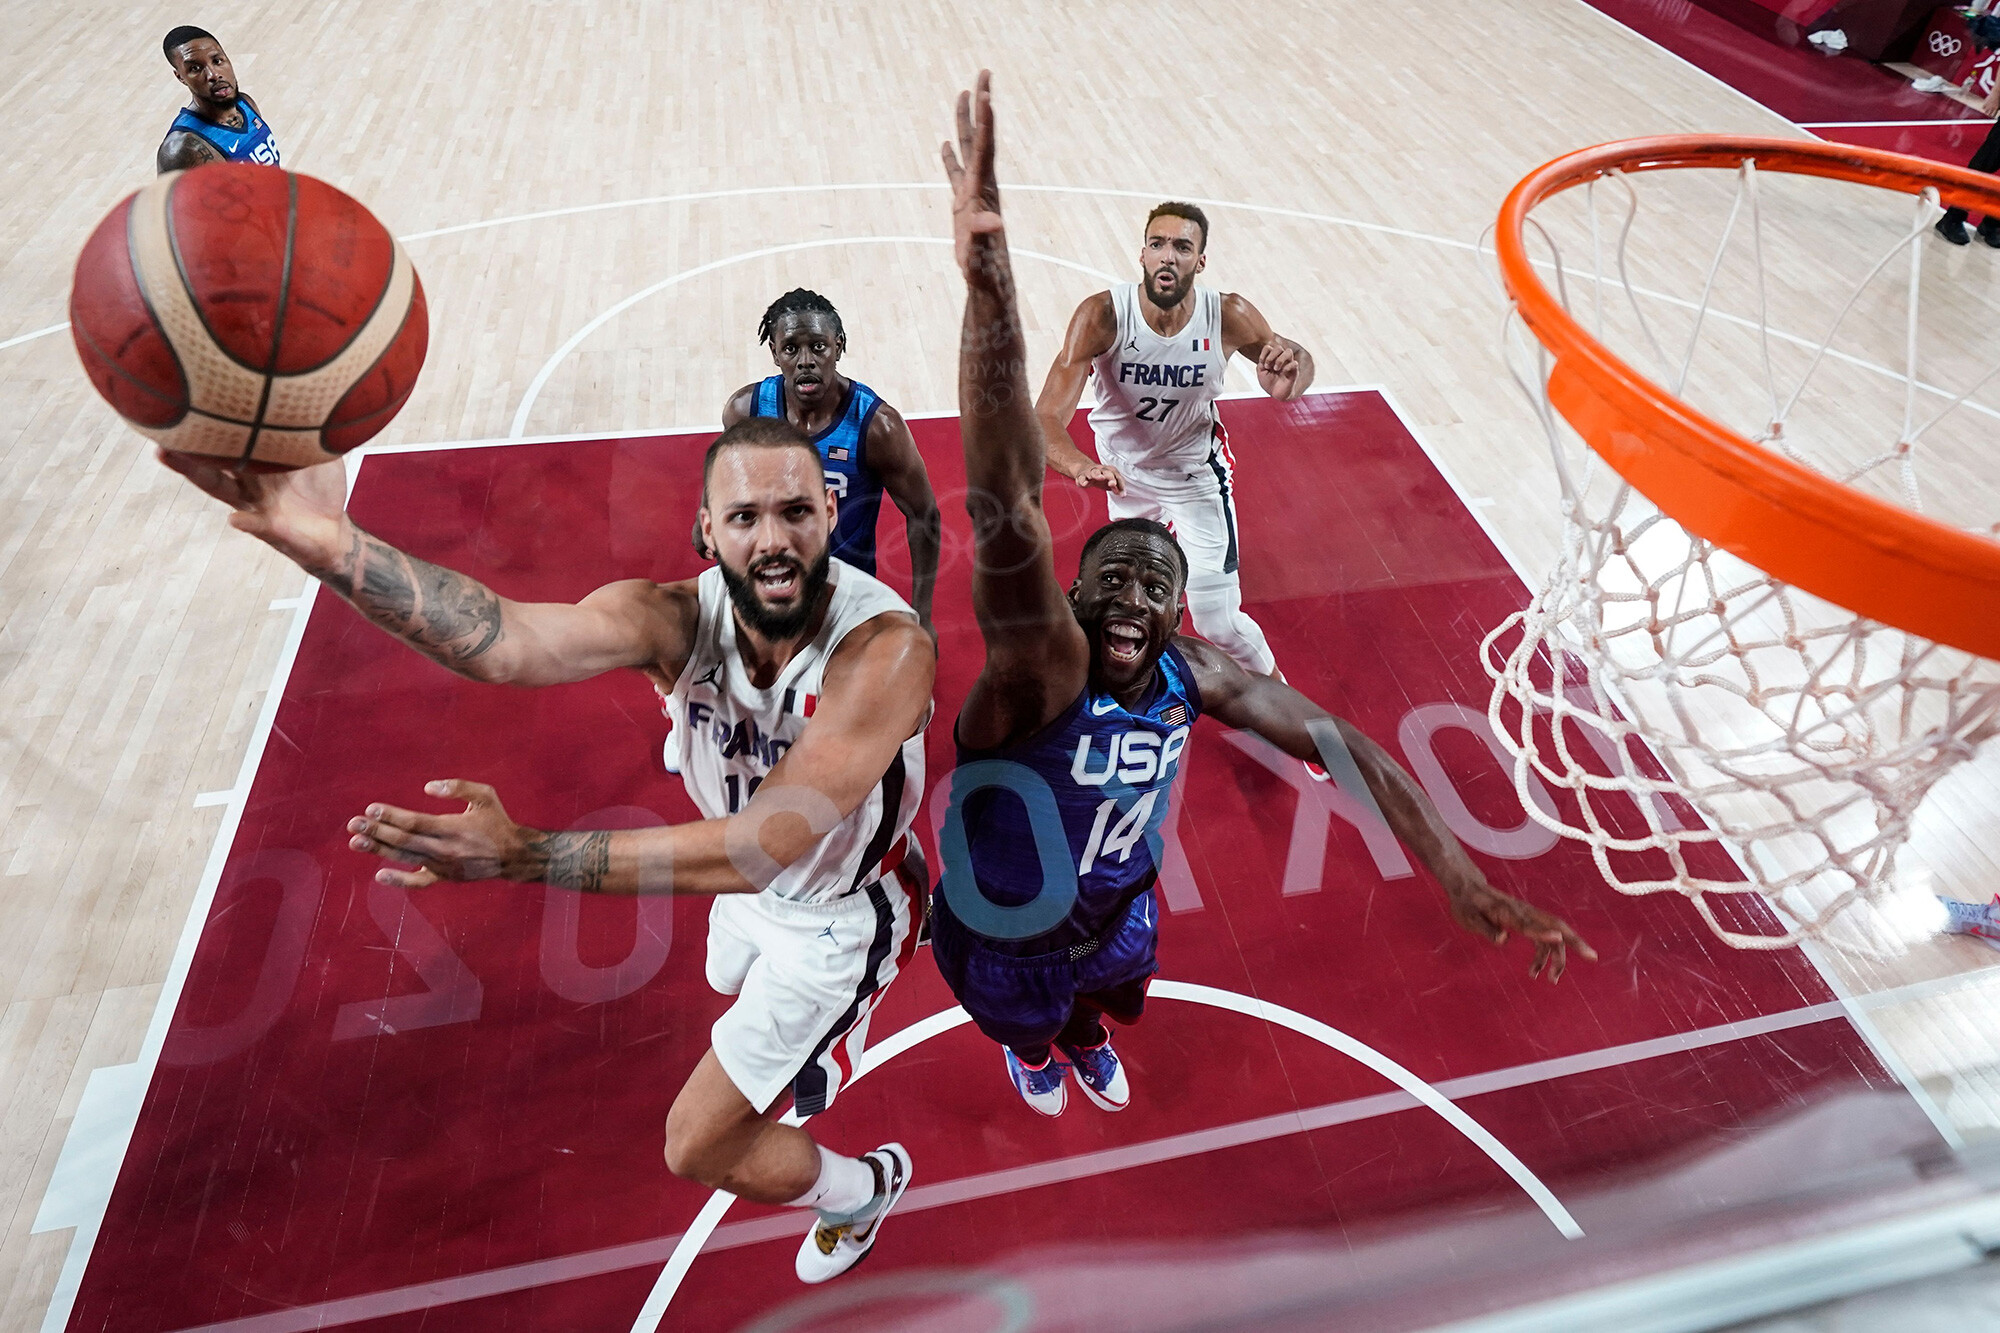 US men's basketball team defeated by France for first Olympic loss since 2004